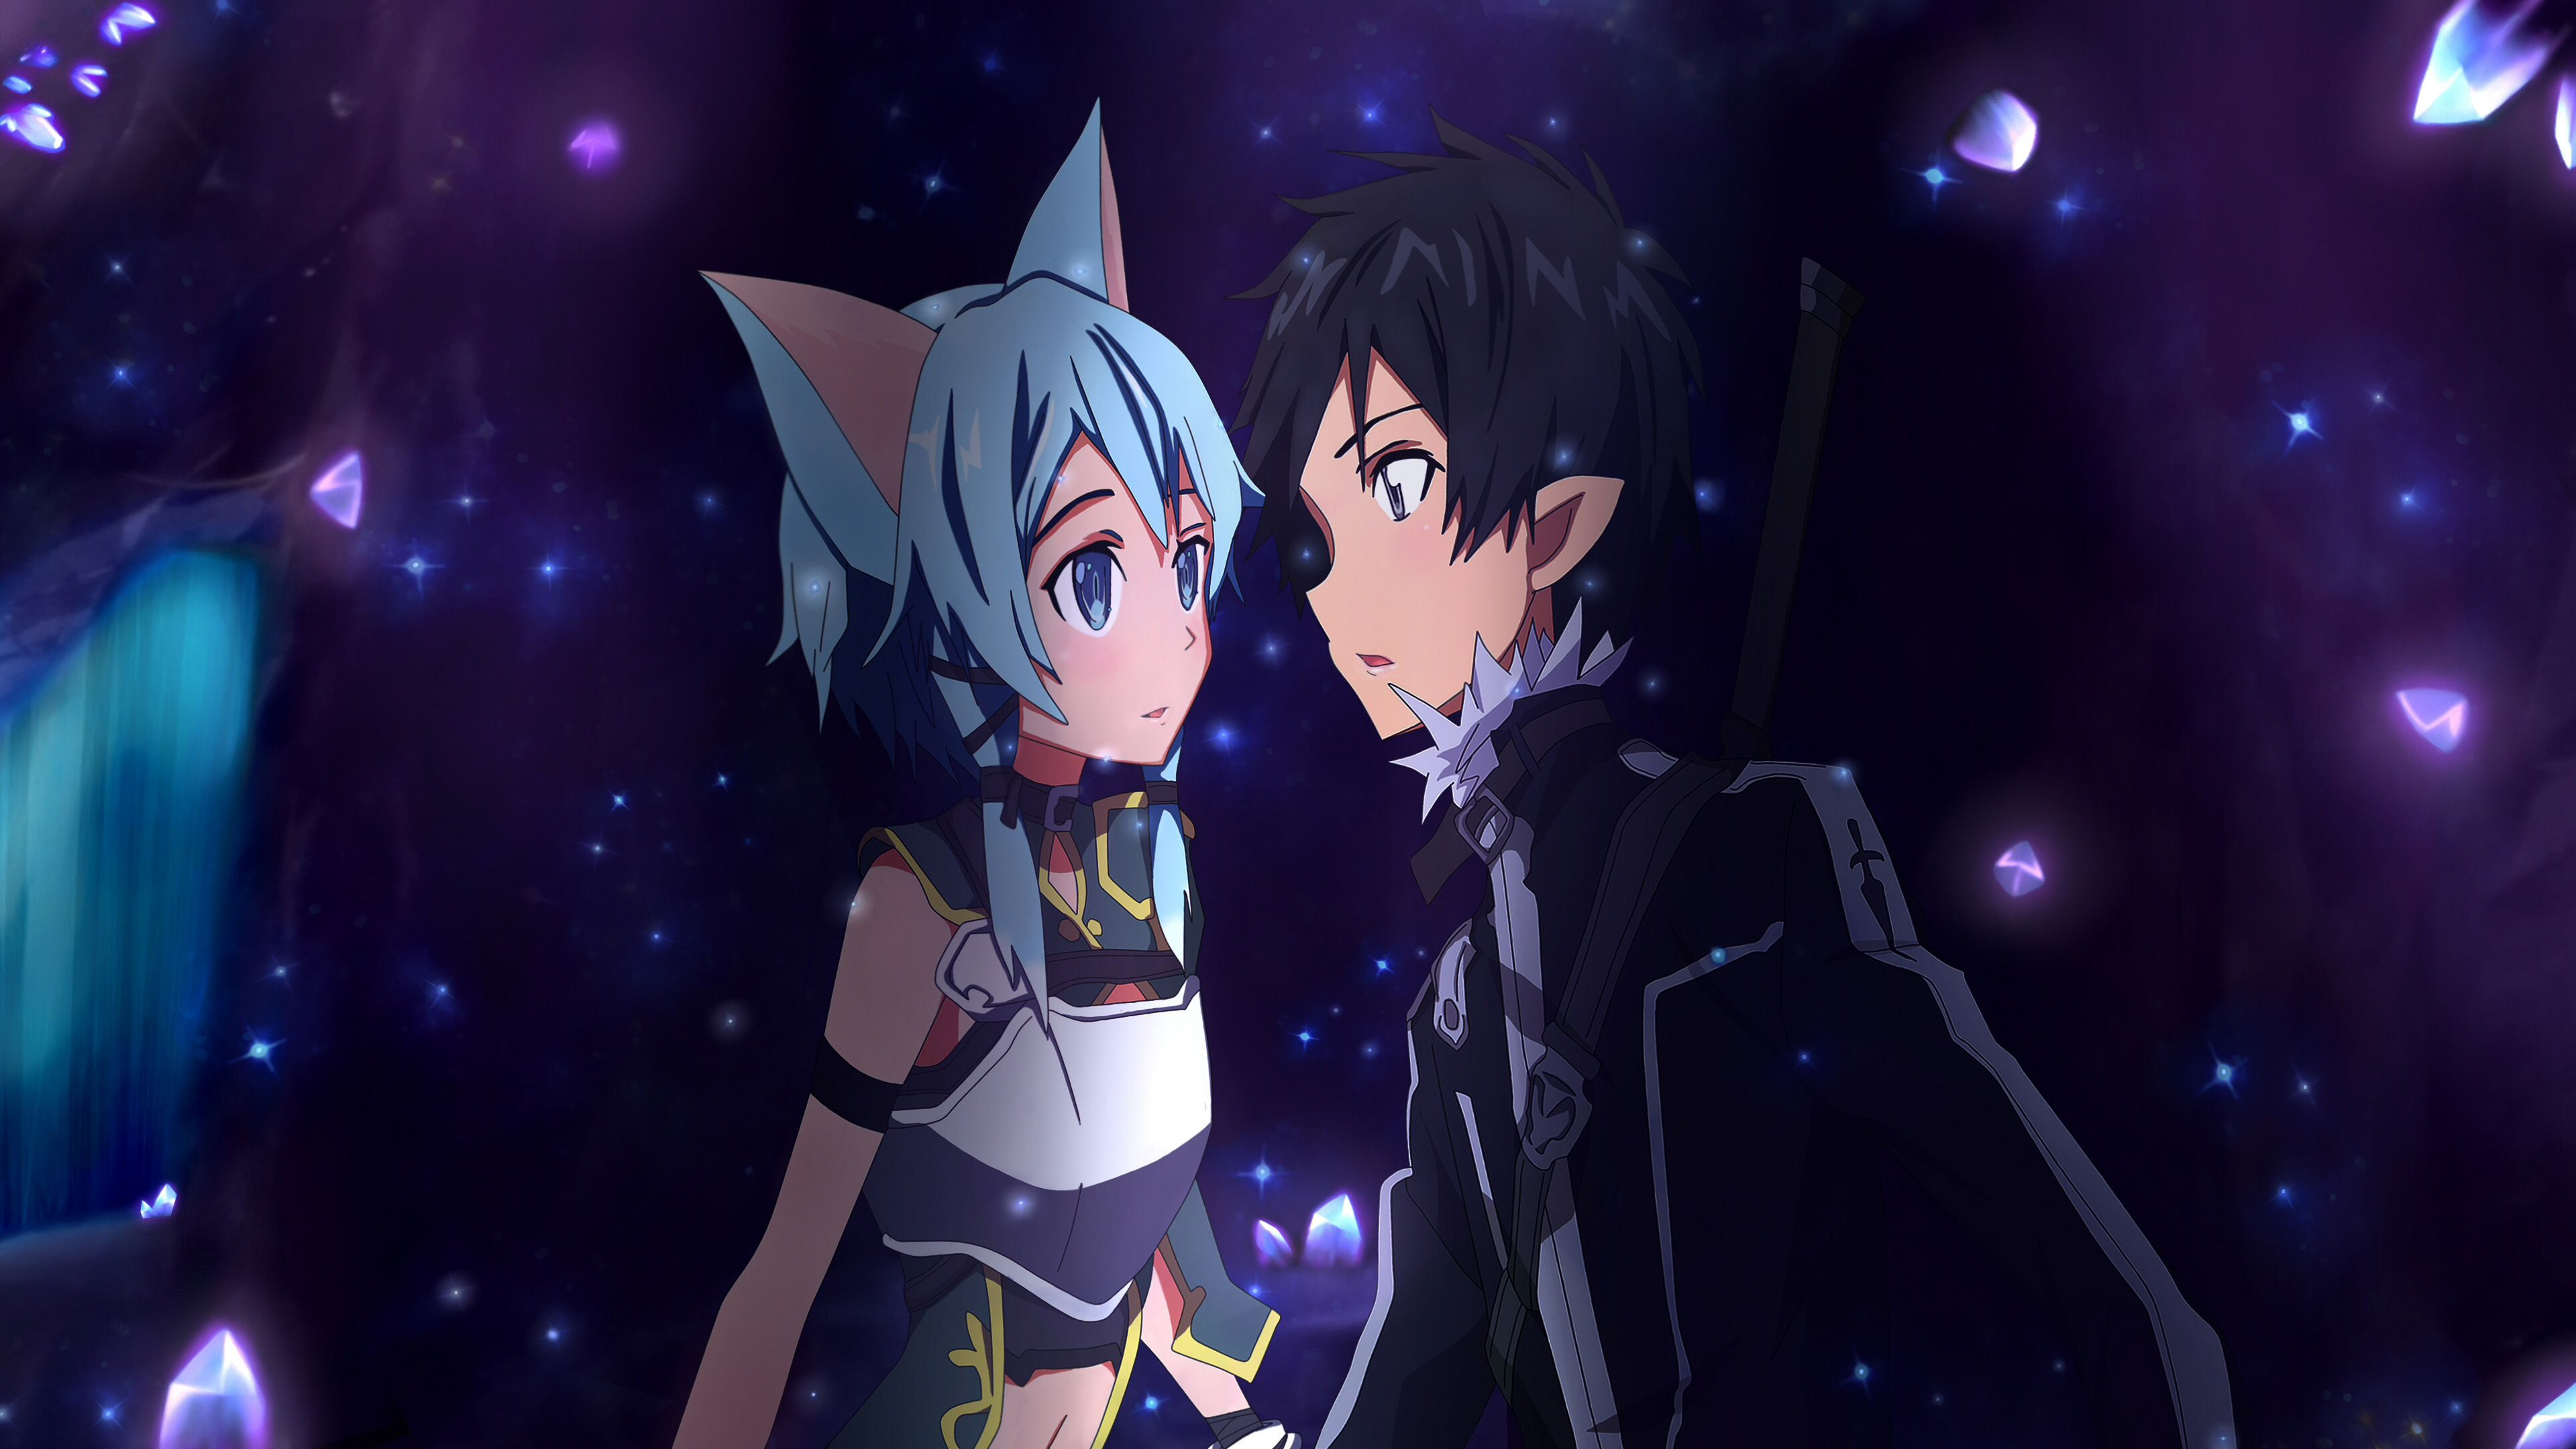 Pin On Kirito And Sinon